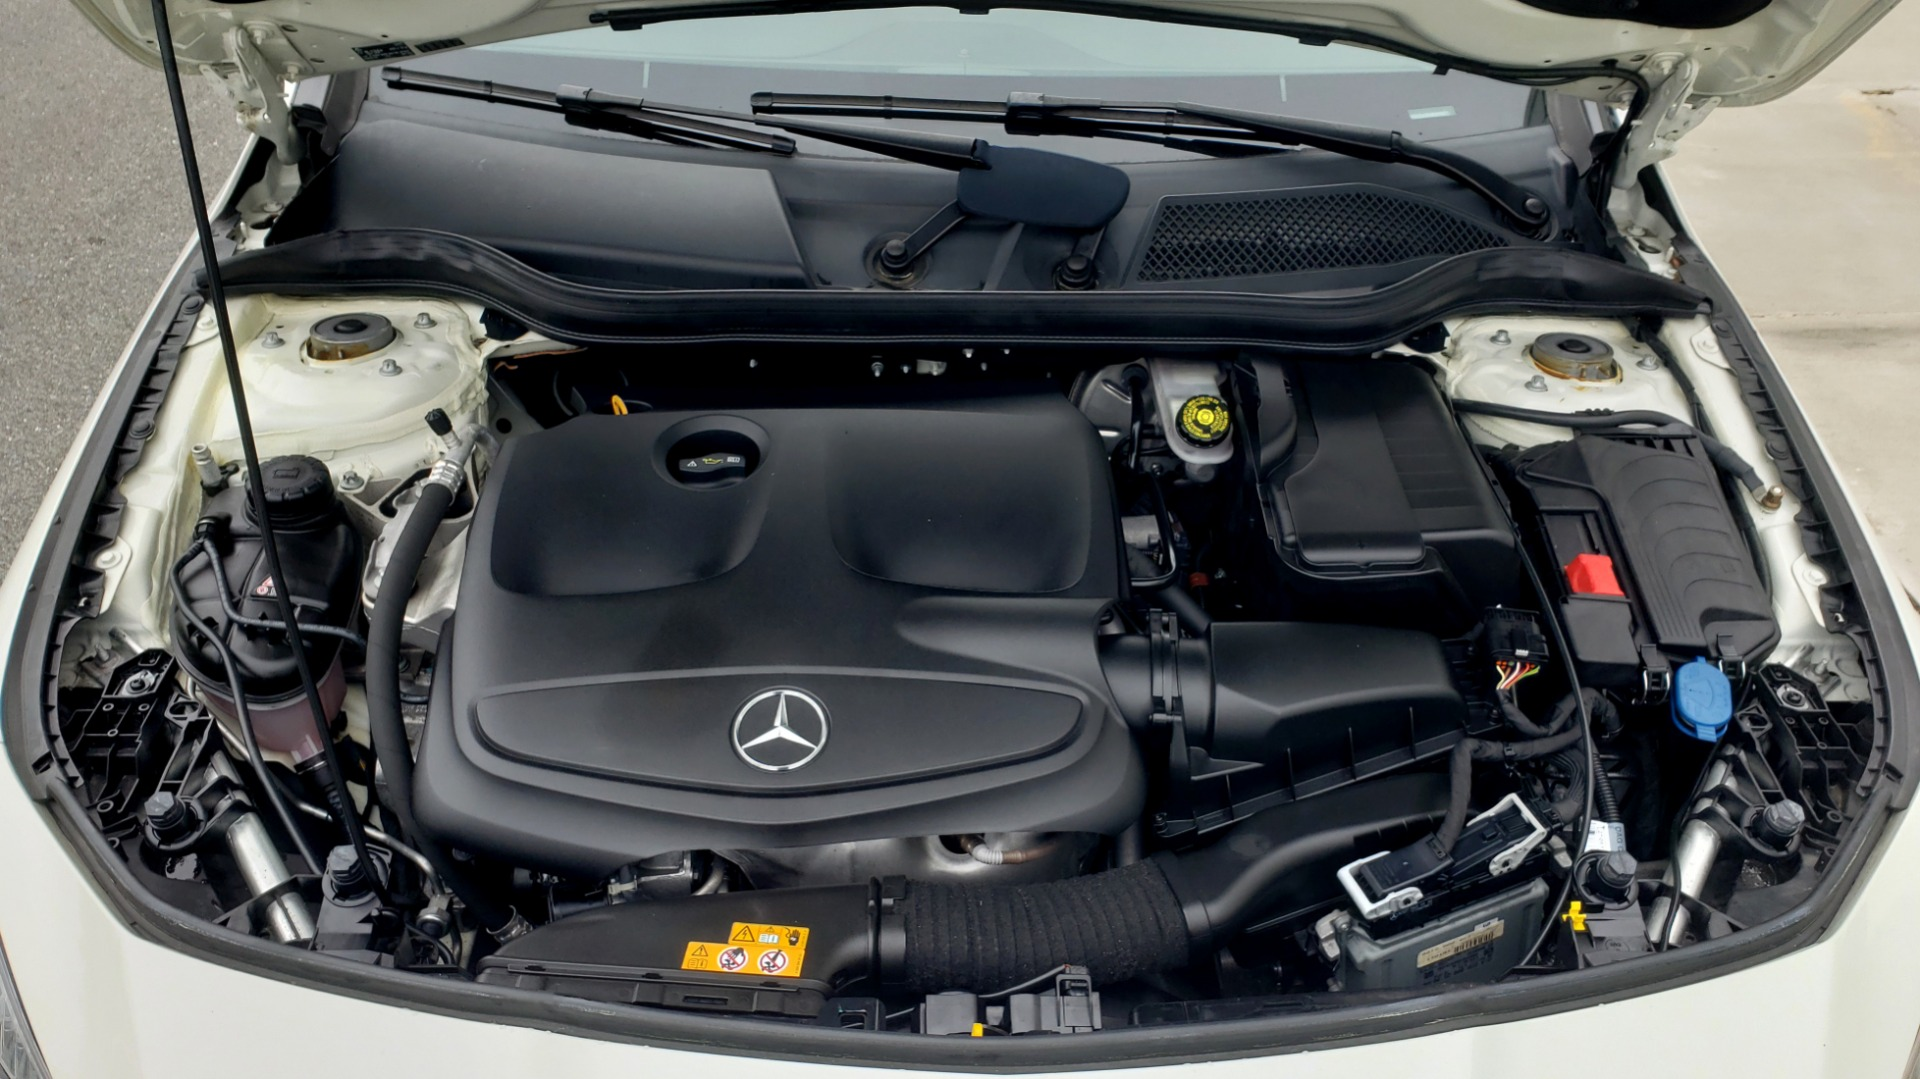 Used 2018 Mercedes-Benz CLA 250 PREMIUM / NAV / PANO-ROOF / APPLE CARPLAY / REARVIEW for sale $23,995 at Formula Imports in Charlotte NC 28227 12